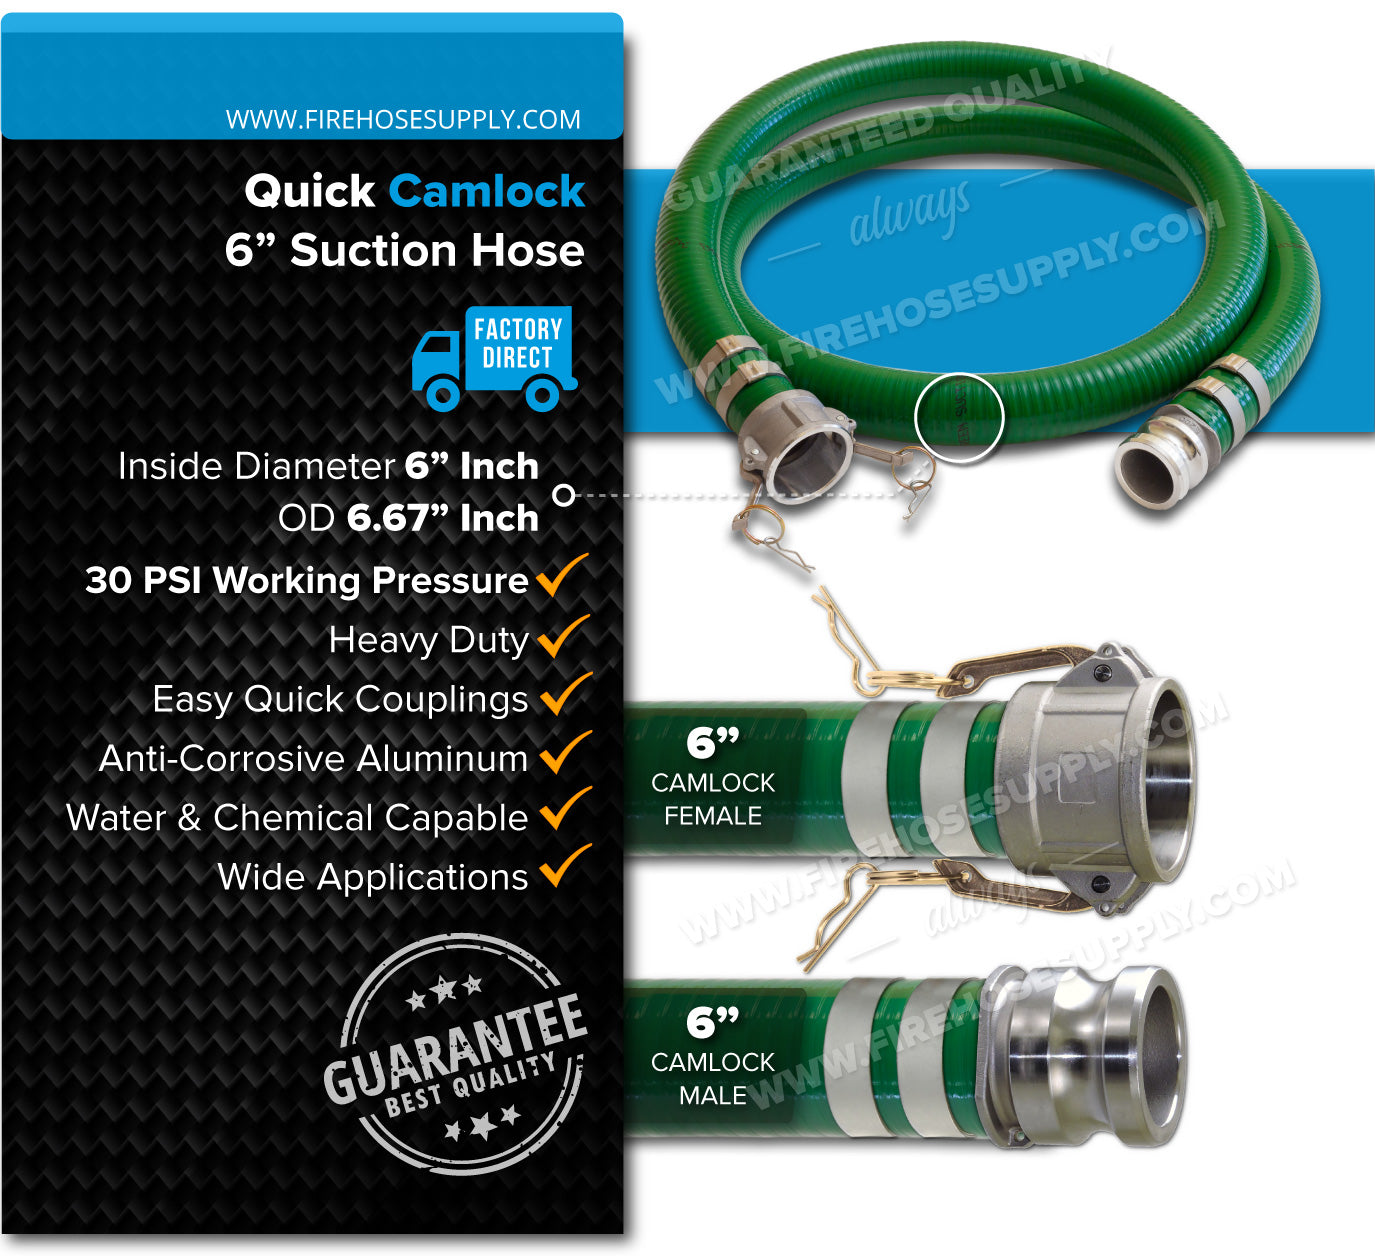 6 Inch Camlock Female x Male Green Suction Hose Overview